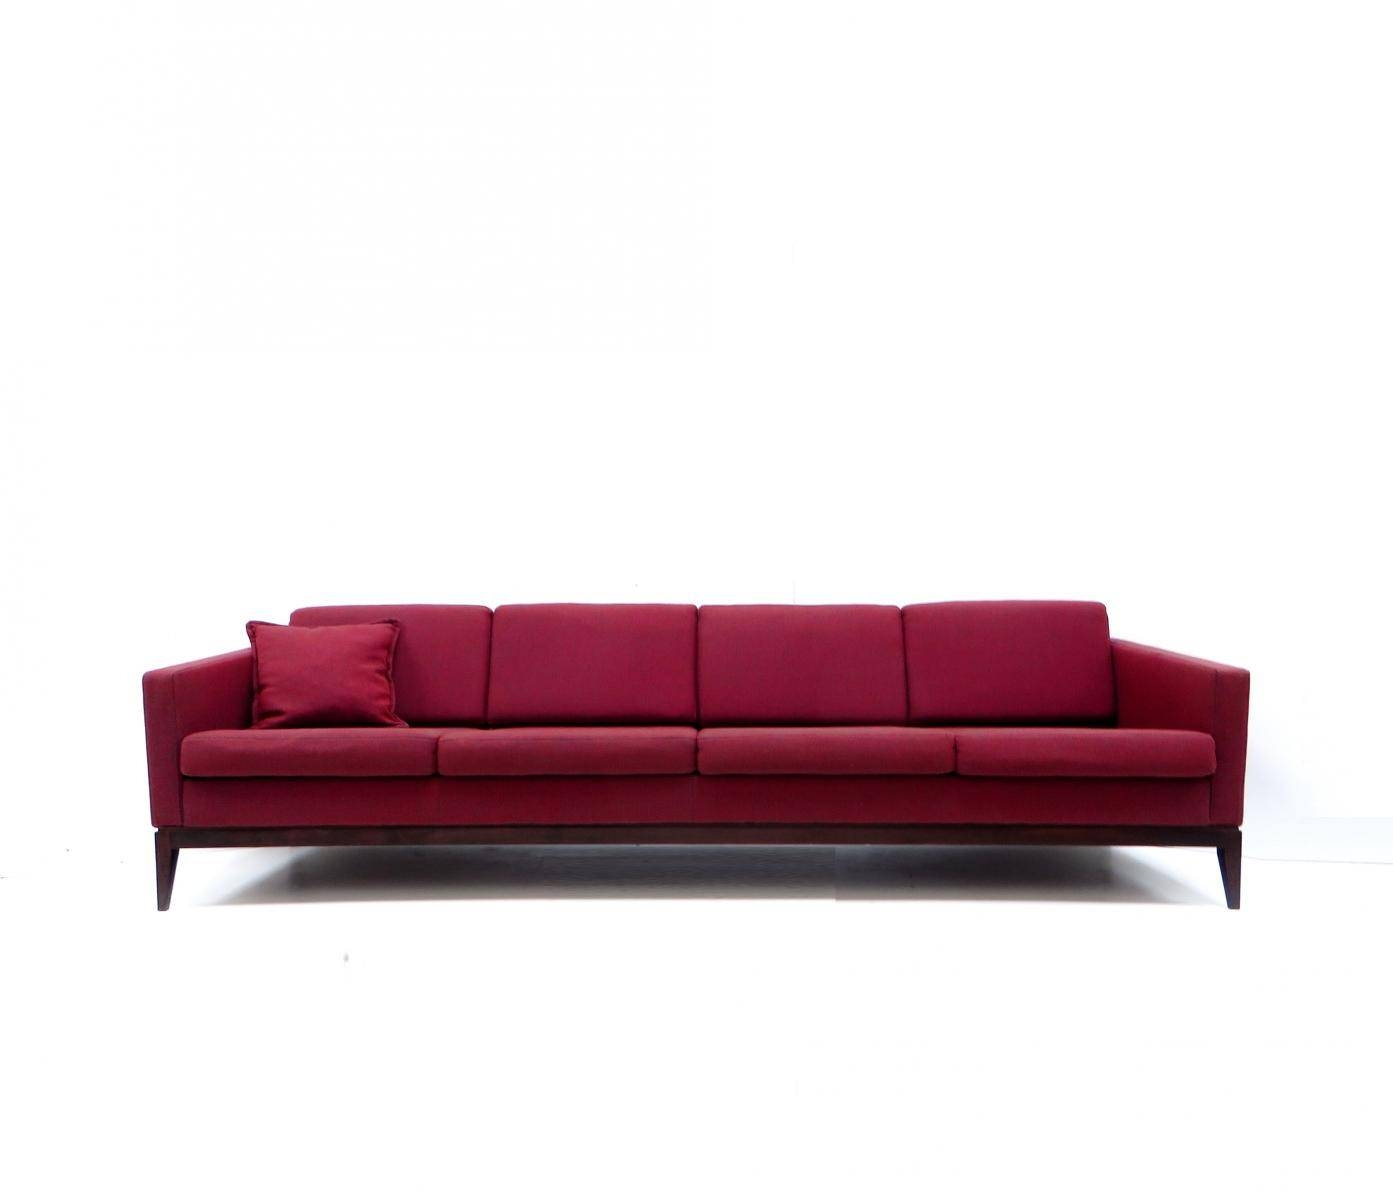 Large Vintage Burgundy Four-Seater Sofa For Sale At Pamono pertaining to Four Seater Sofas (Image 18 of 30)